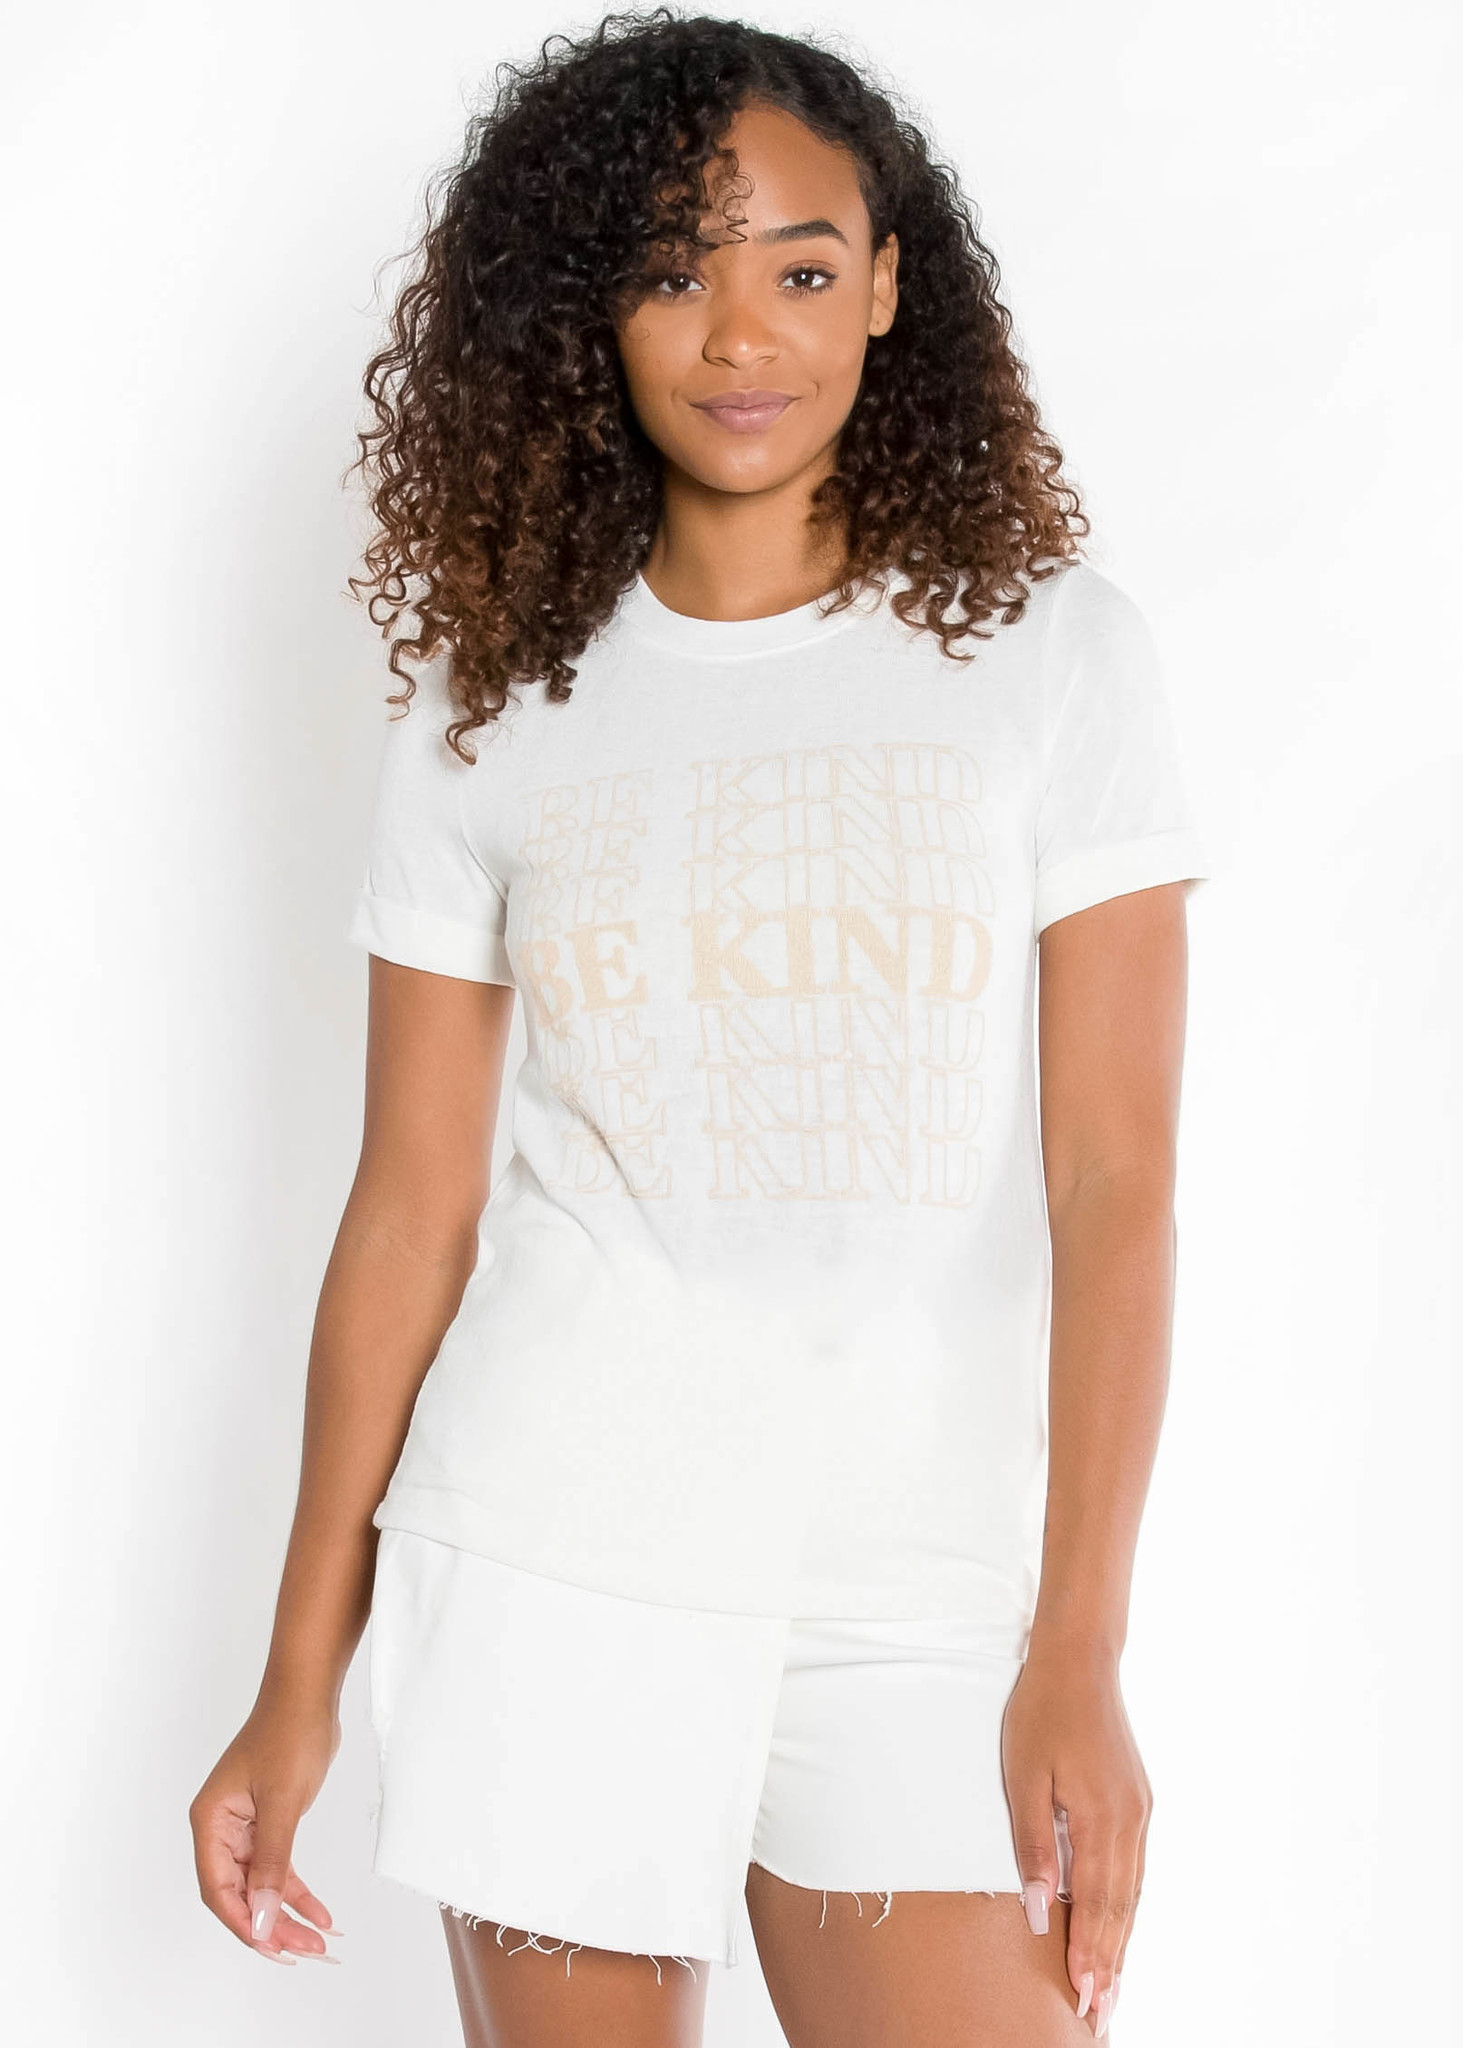 BE KIND SHORT SLEEVE GRAPHIC TEE